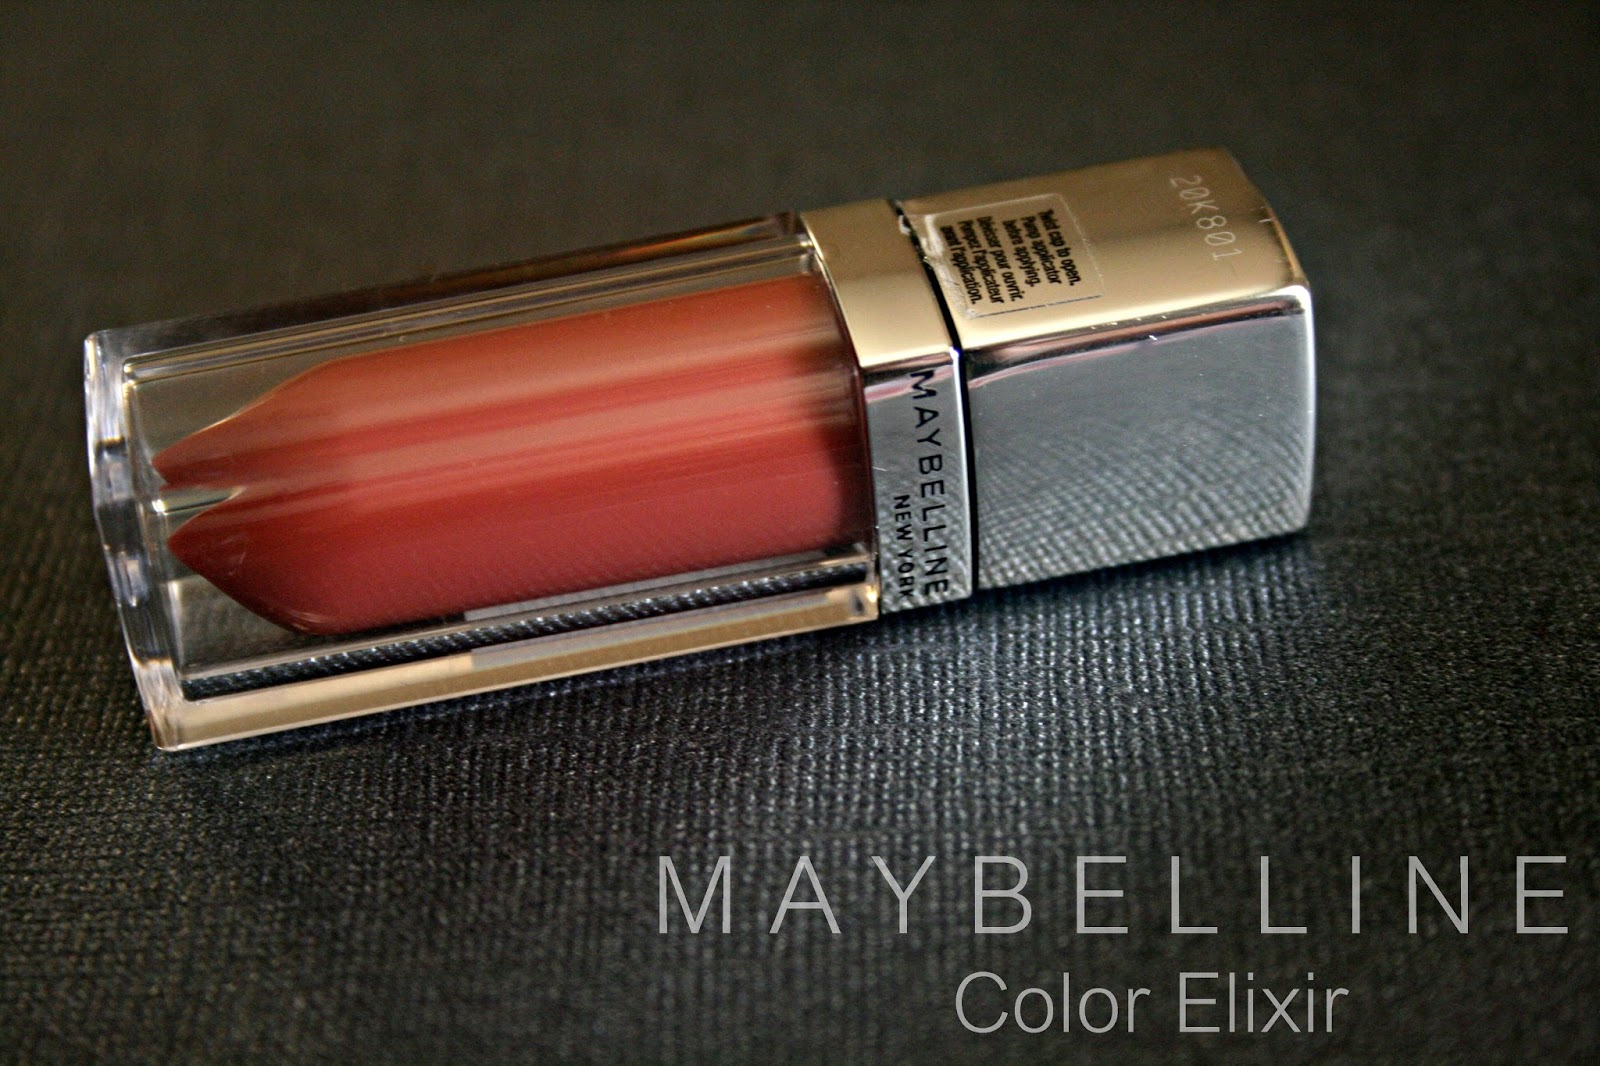 Maybelline New York Color Elixir in Caramel Infused Review, Photos & Swatches